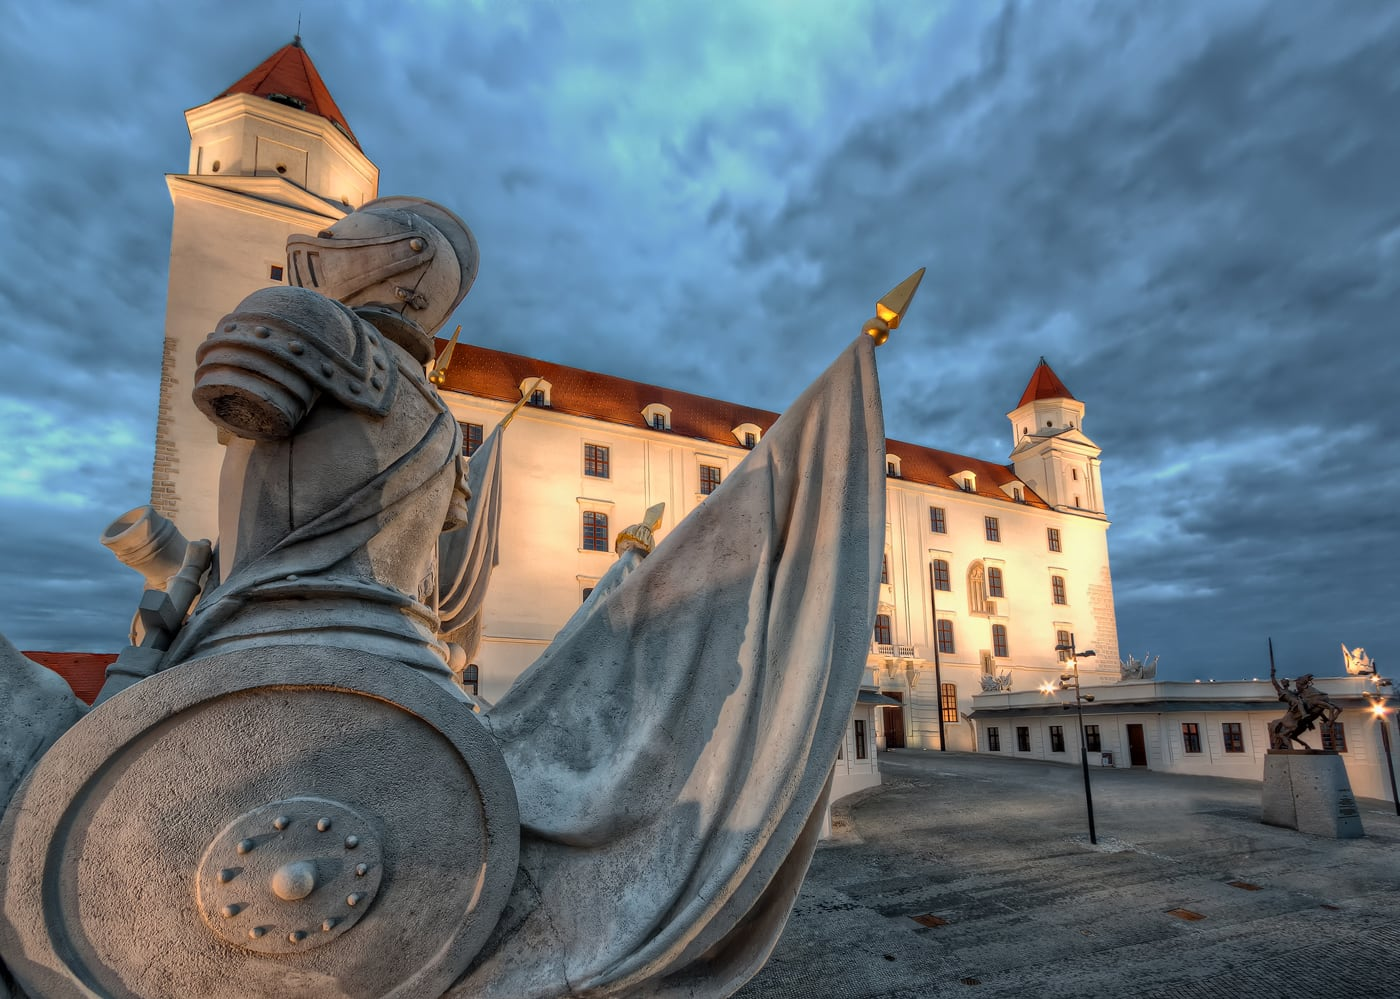 Bratislava Castle with a Roman Statue on the Gate in Front. HDR effect gives a feeling of a haunted castle in Slovakia, guarded by the soldiers at night.